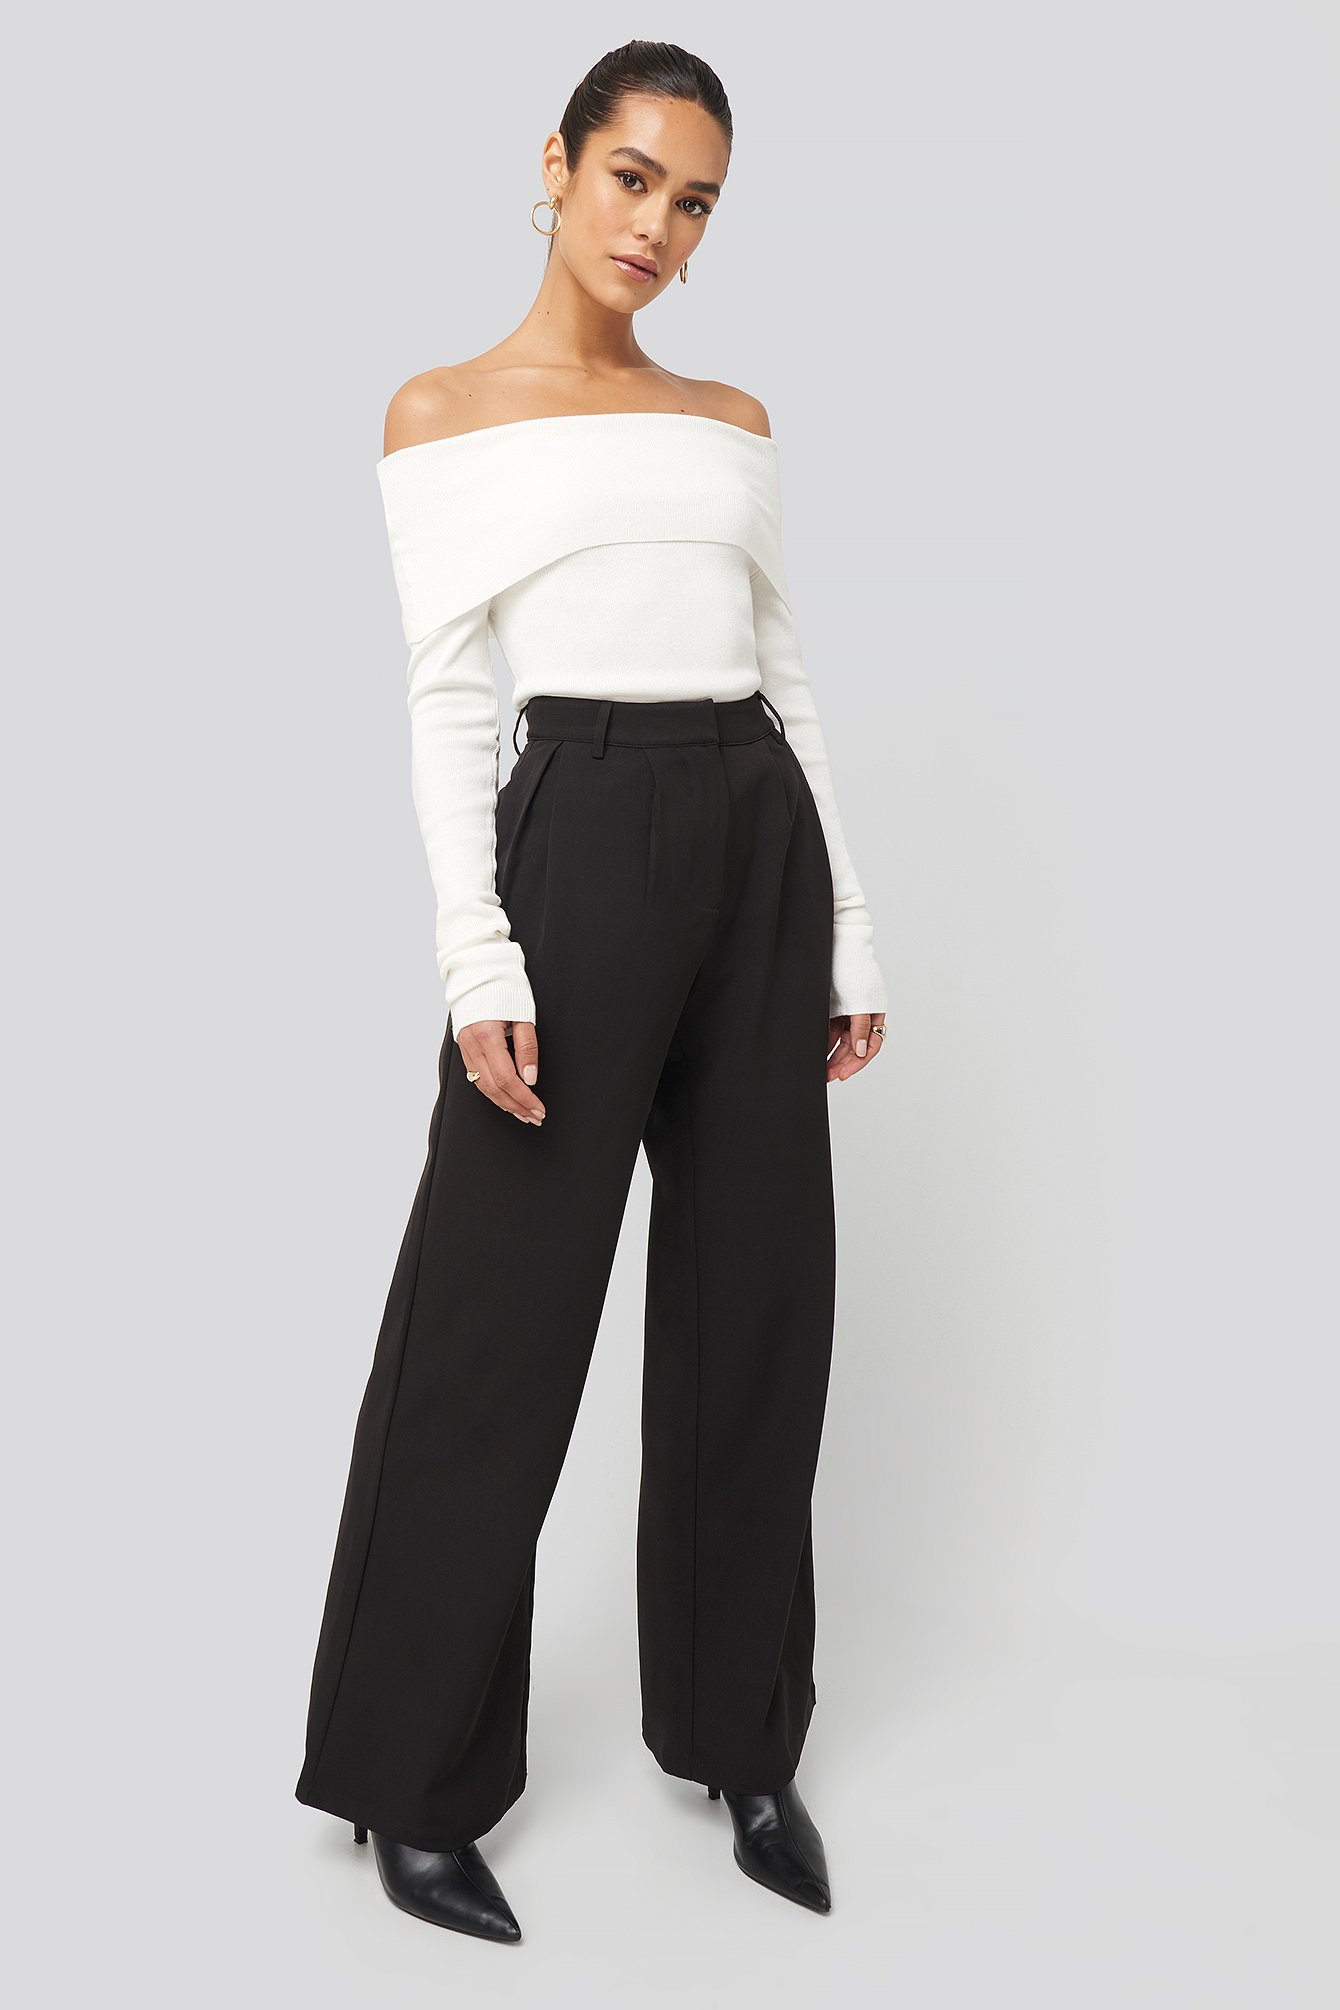 Flowy Tailored Pants Black by Hannaweigxnakd